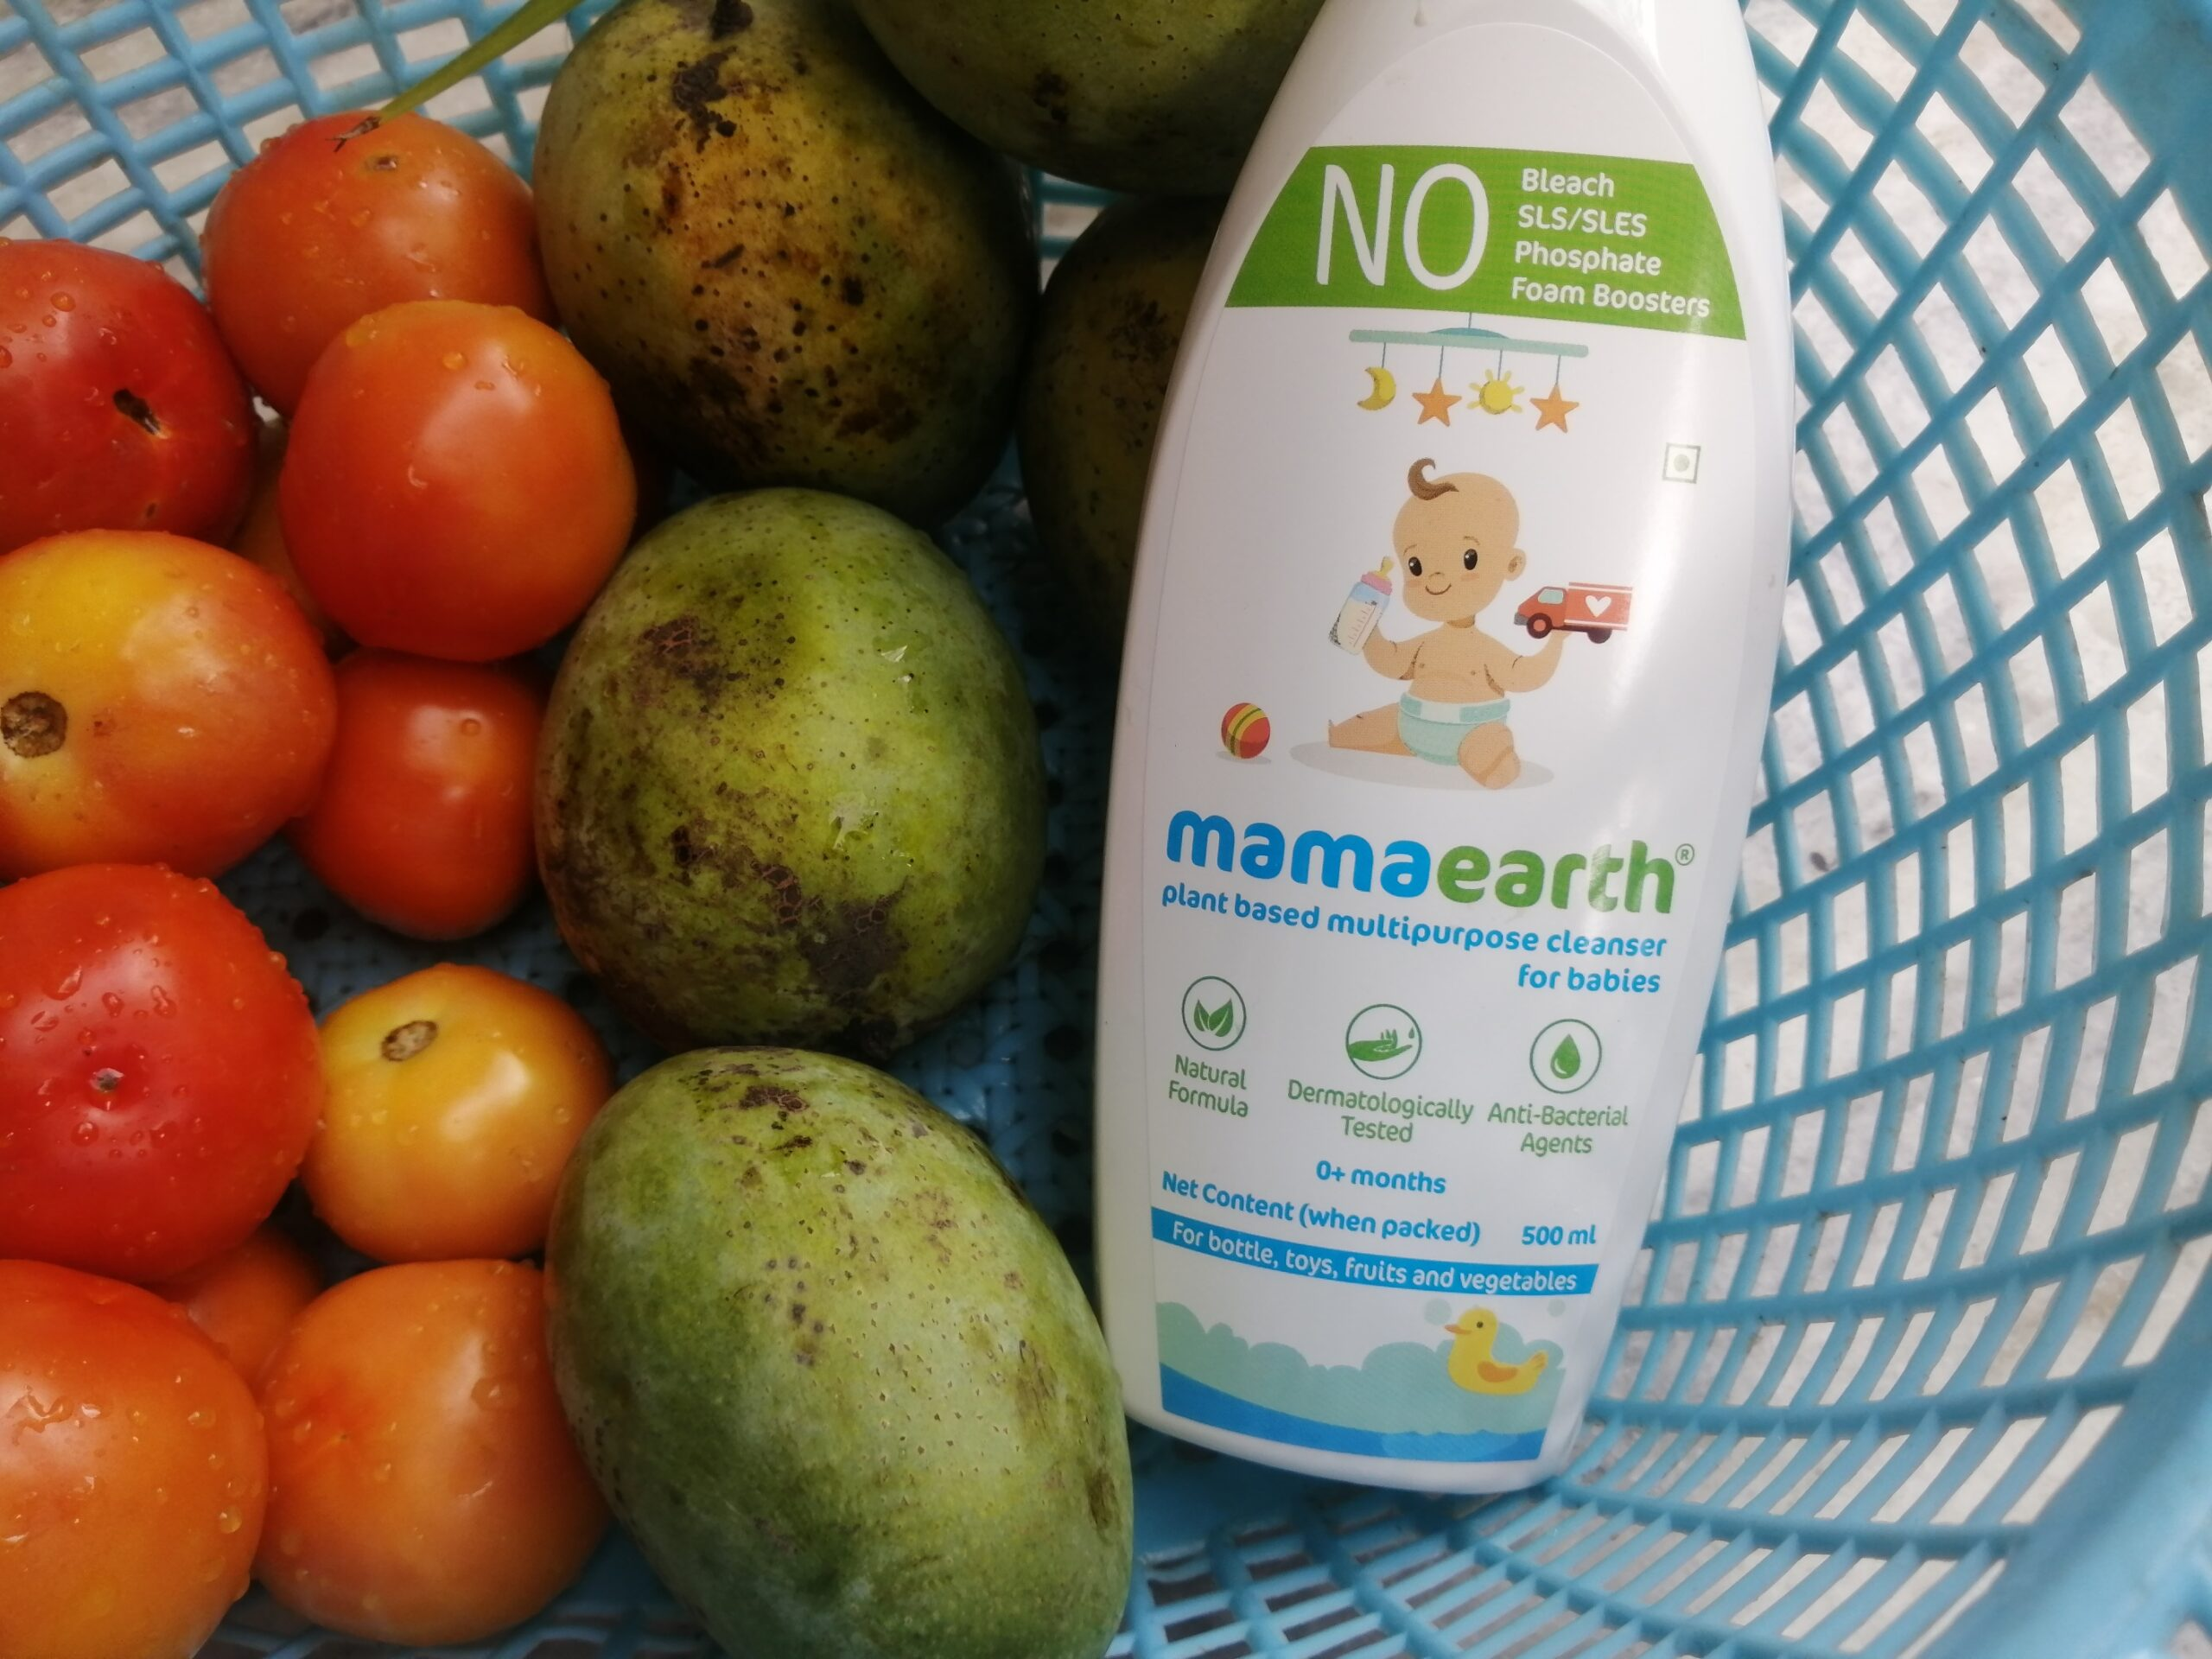 Mamaearth Plant-Based Multi Purpose Cleanser